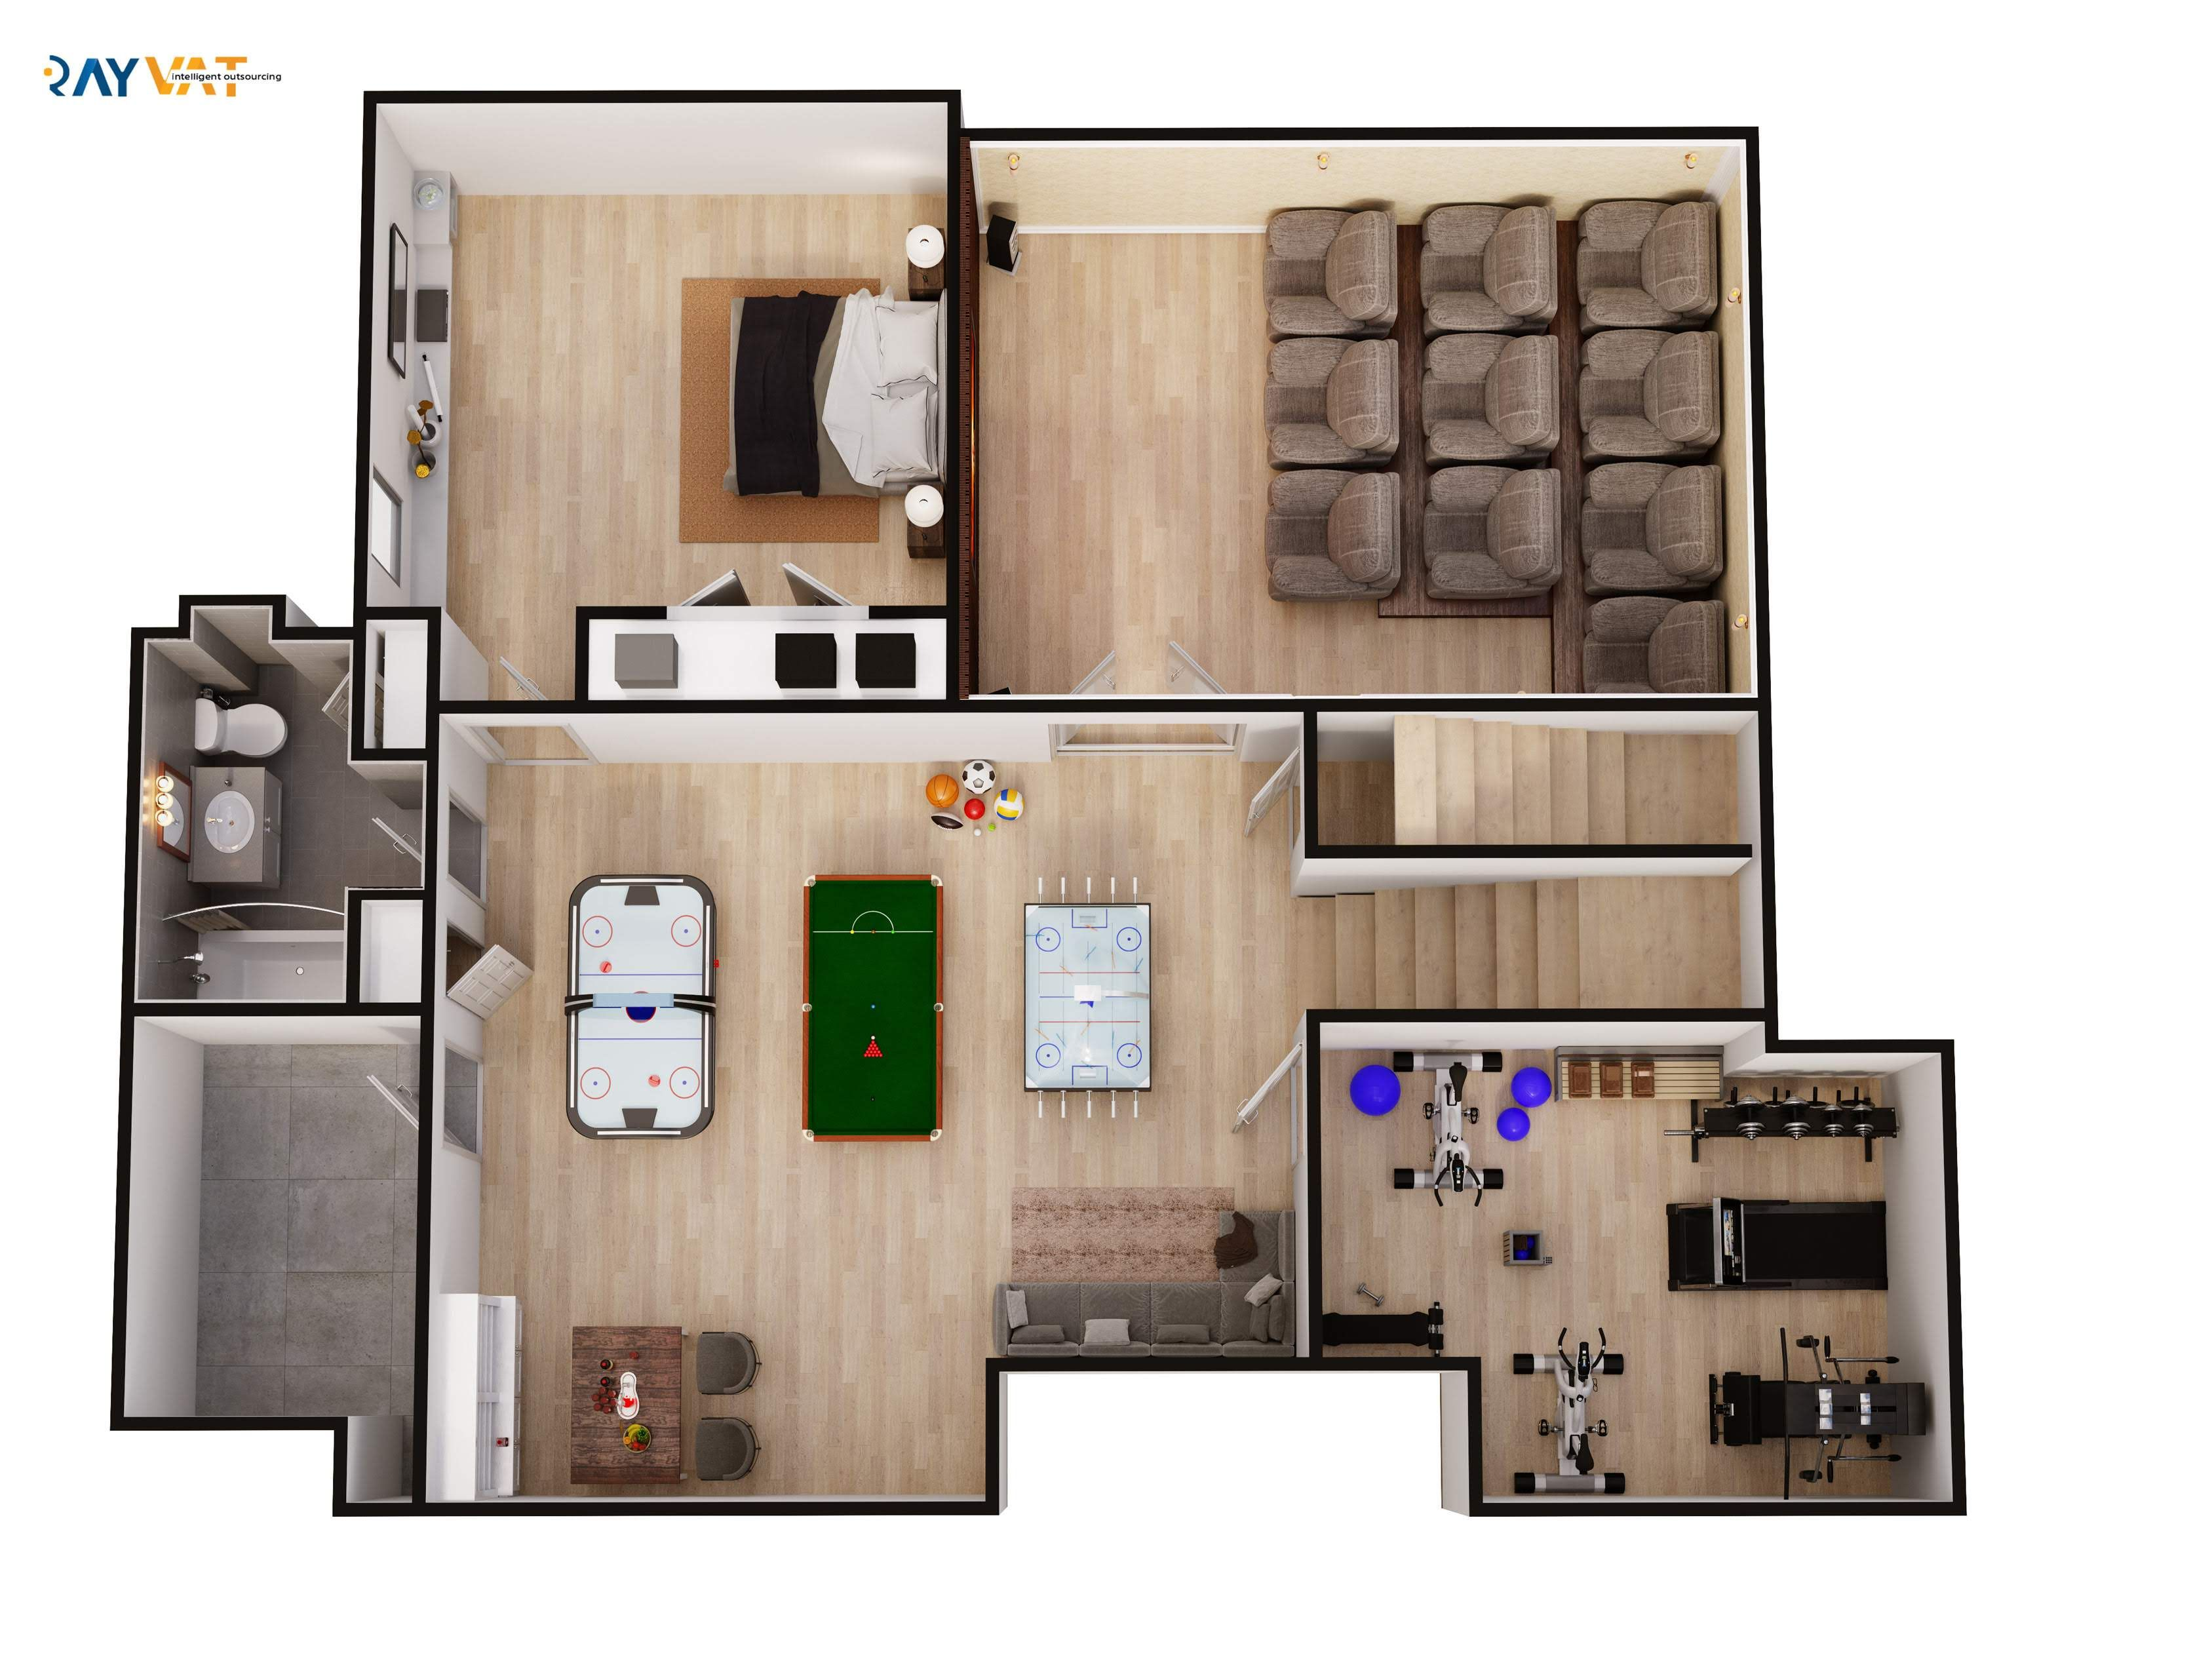 Basement Floorplan Architectural Floor Plans Basement Floor Plans Contemporary House Design